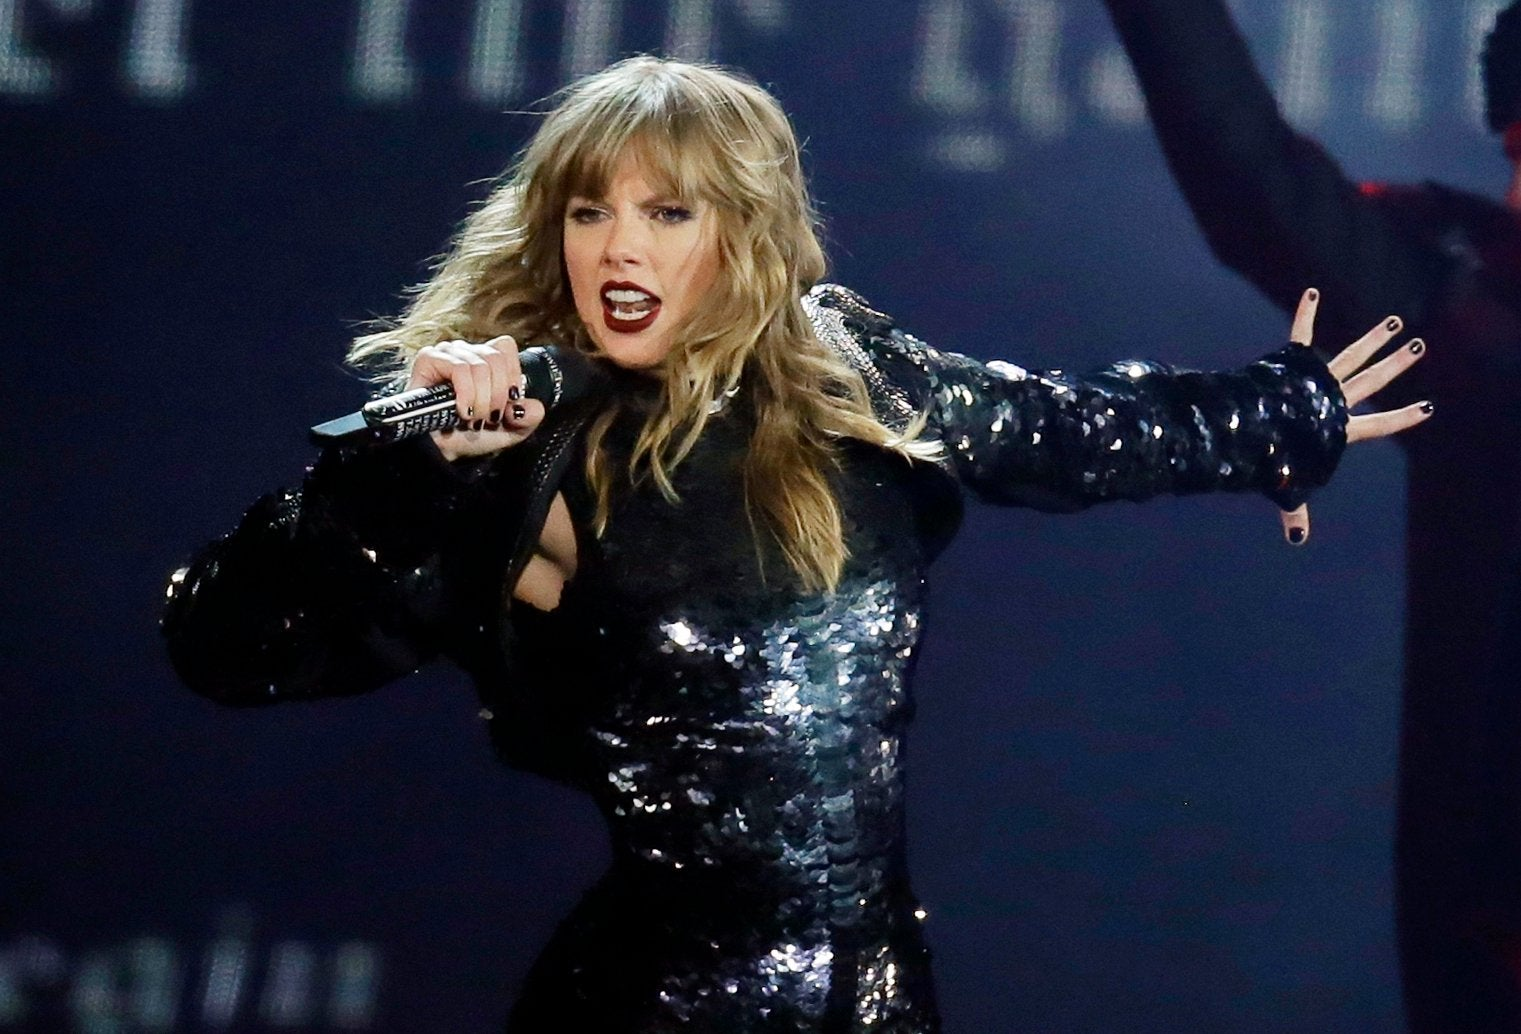 Taylor Swift signs new deal with Republic Records and Universal Music Group: 'I'm ecstatic'